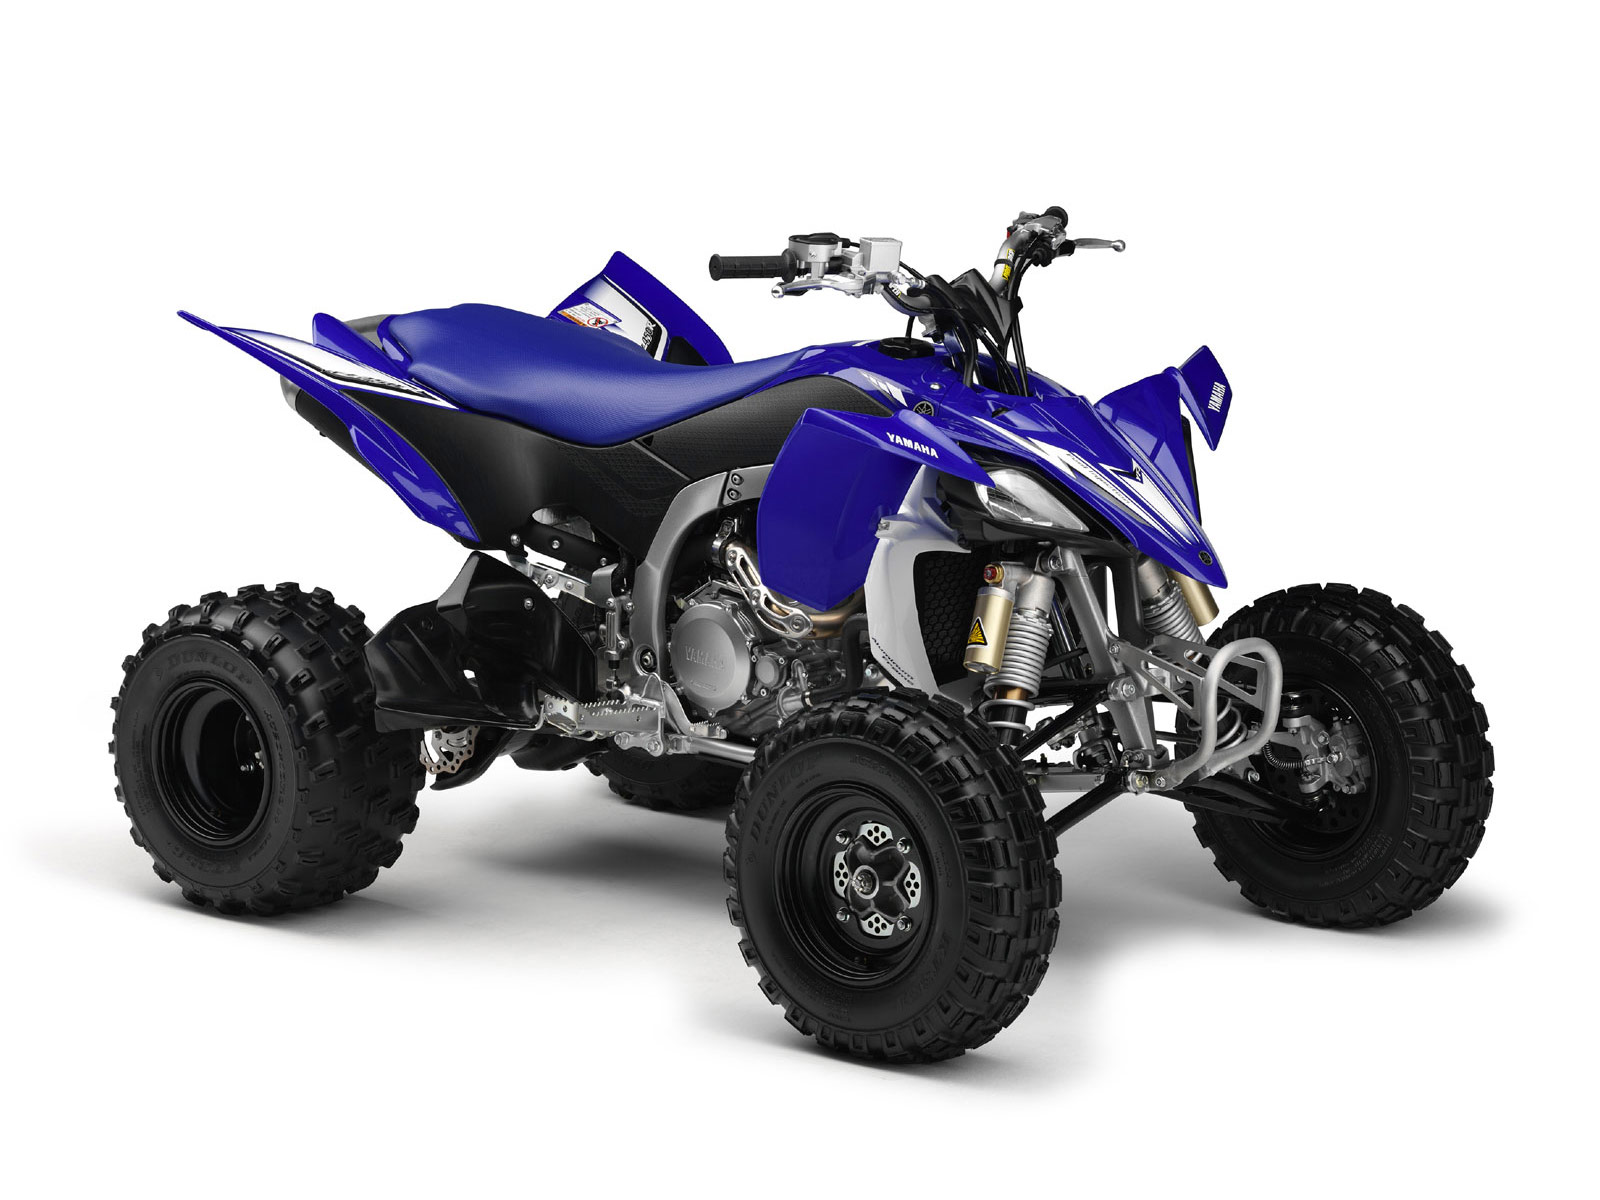 Prototype 49.5″ Wide Yamaha Raptor 700 Test